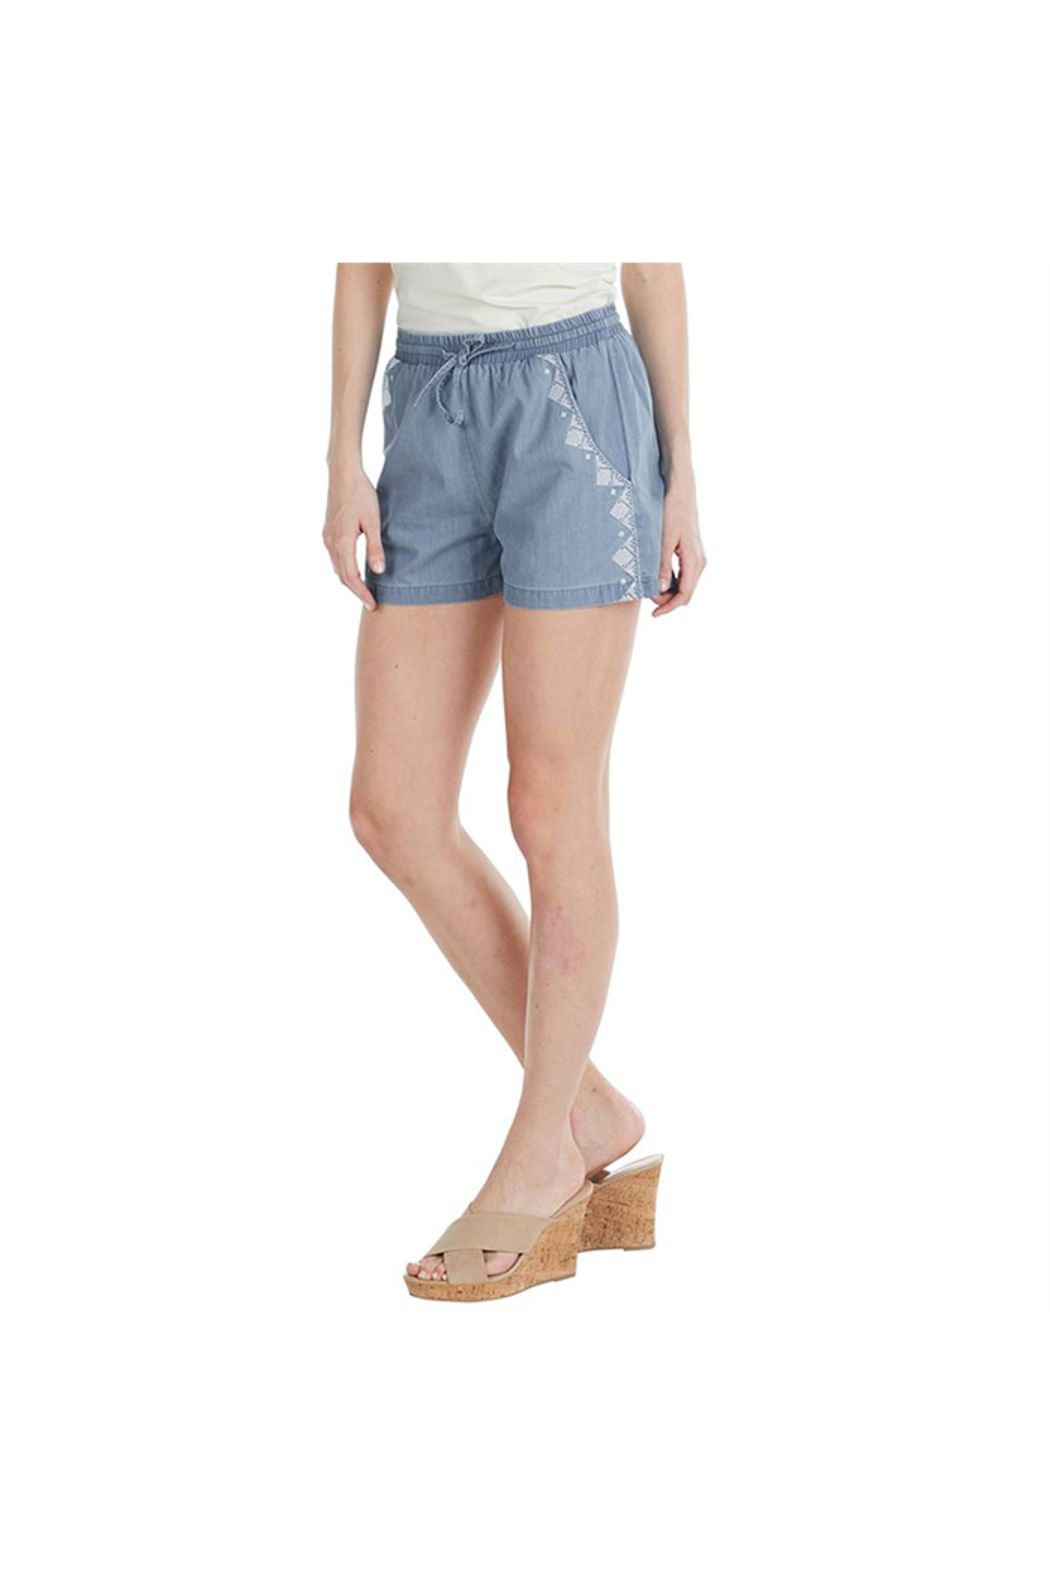 Mud Pie Sloane Shorts - Front Cropped Image